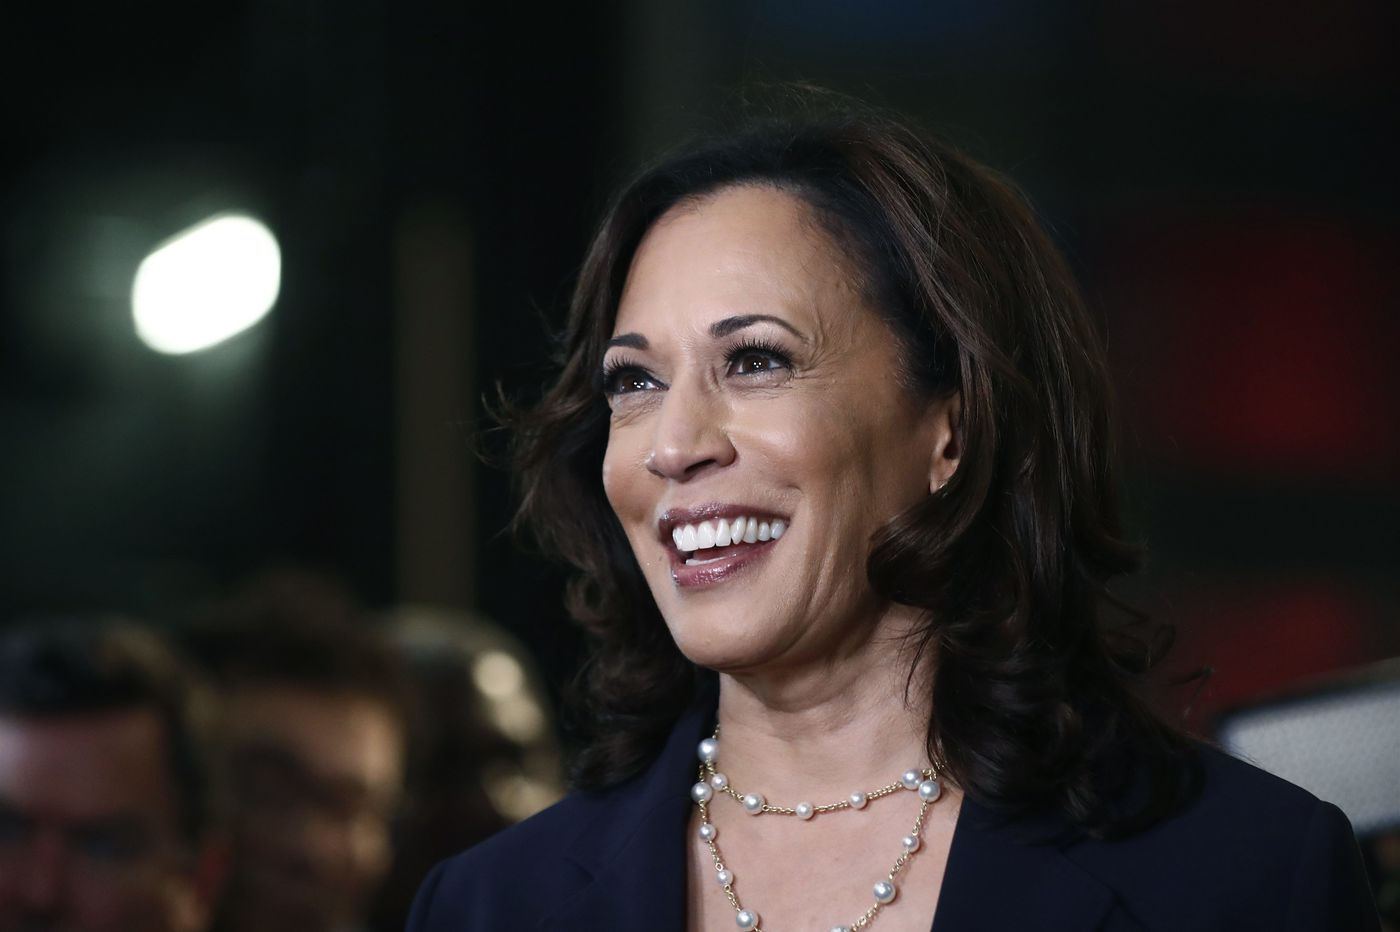 On the momentum of Kamala Harris, U.S. women should continue to lead the vote   Opinion